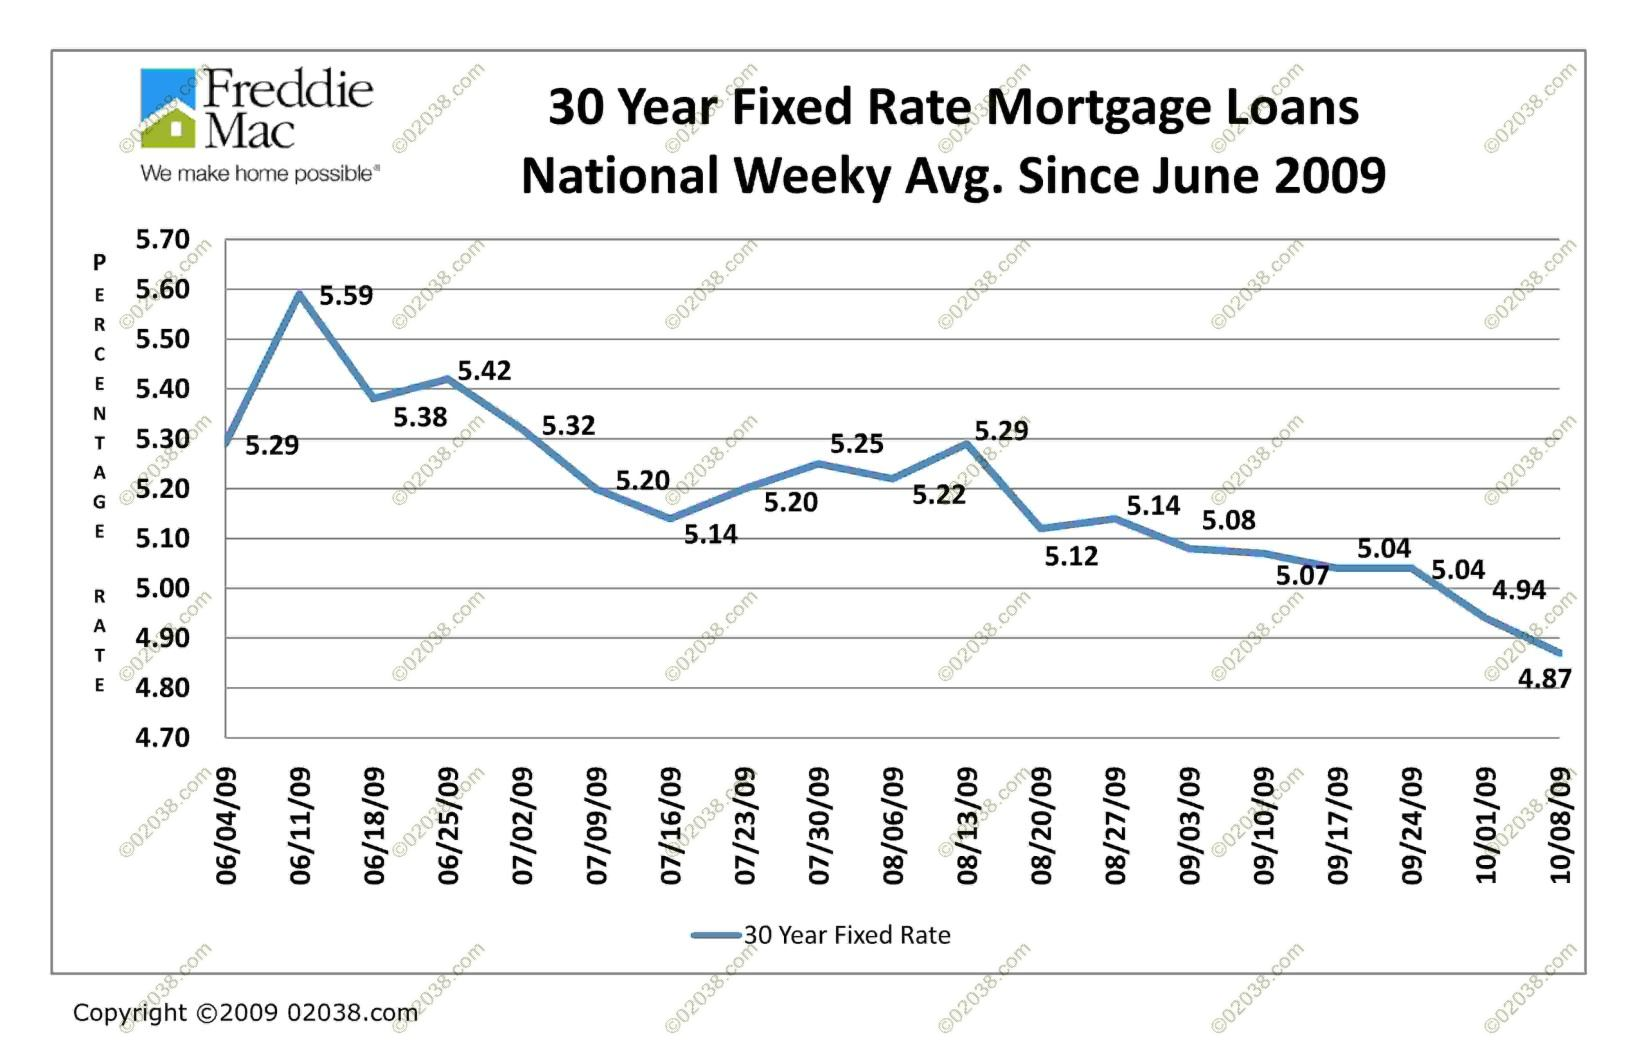 Current 30 Year Mortgage Rates Finance One Online. Go Phone International Text Top 2013 Movies. Temperature Controlled Storage Units. How To Write Master Thesis Paint For Macbook. Hair Removal Columbus Ohio Hamilton K12 Nj Us. How To Alert Credit Agencies Of Identity Theft. Cosmetology License Transfer From State To State. Financial Advisor Rochester Ny. How To Lower Your Credit Score